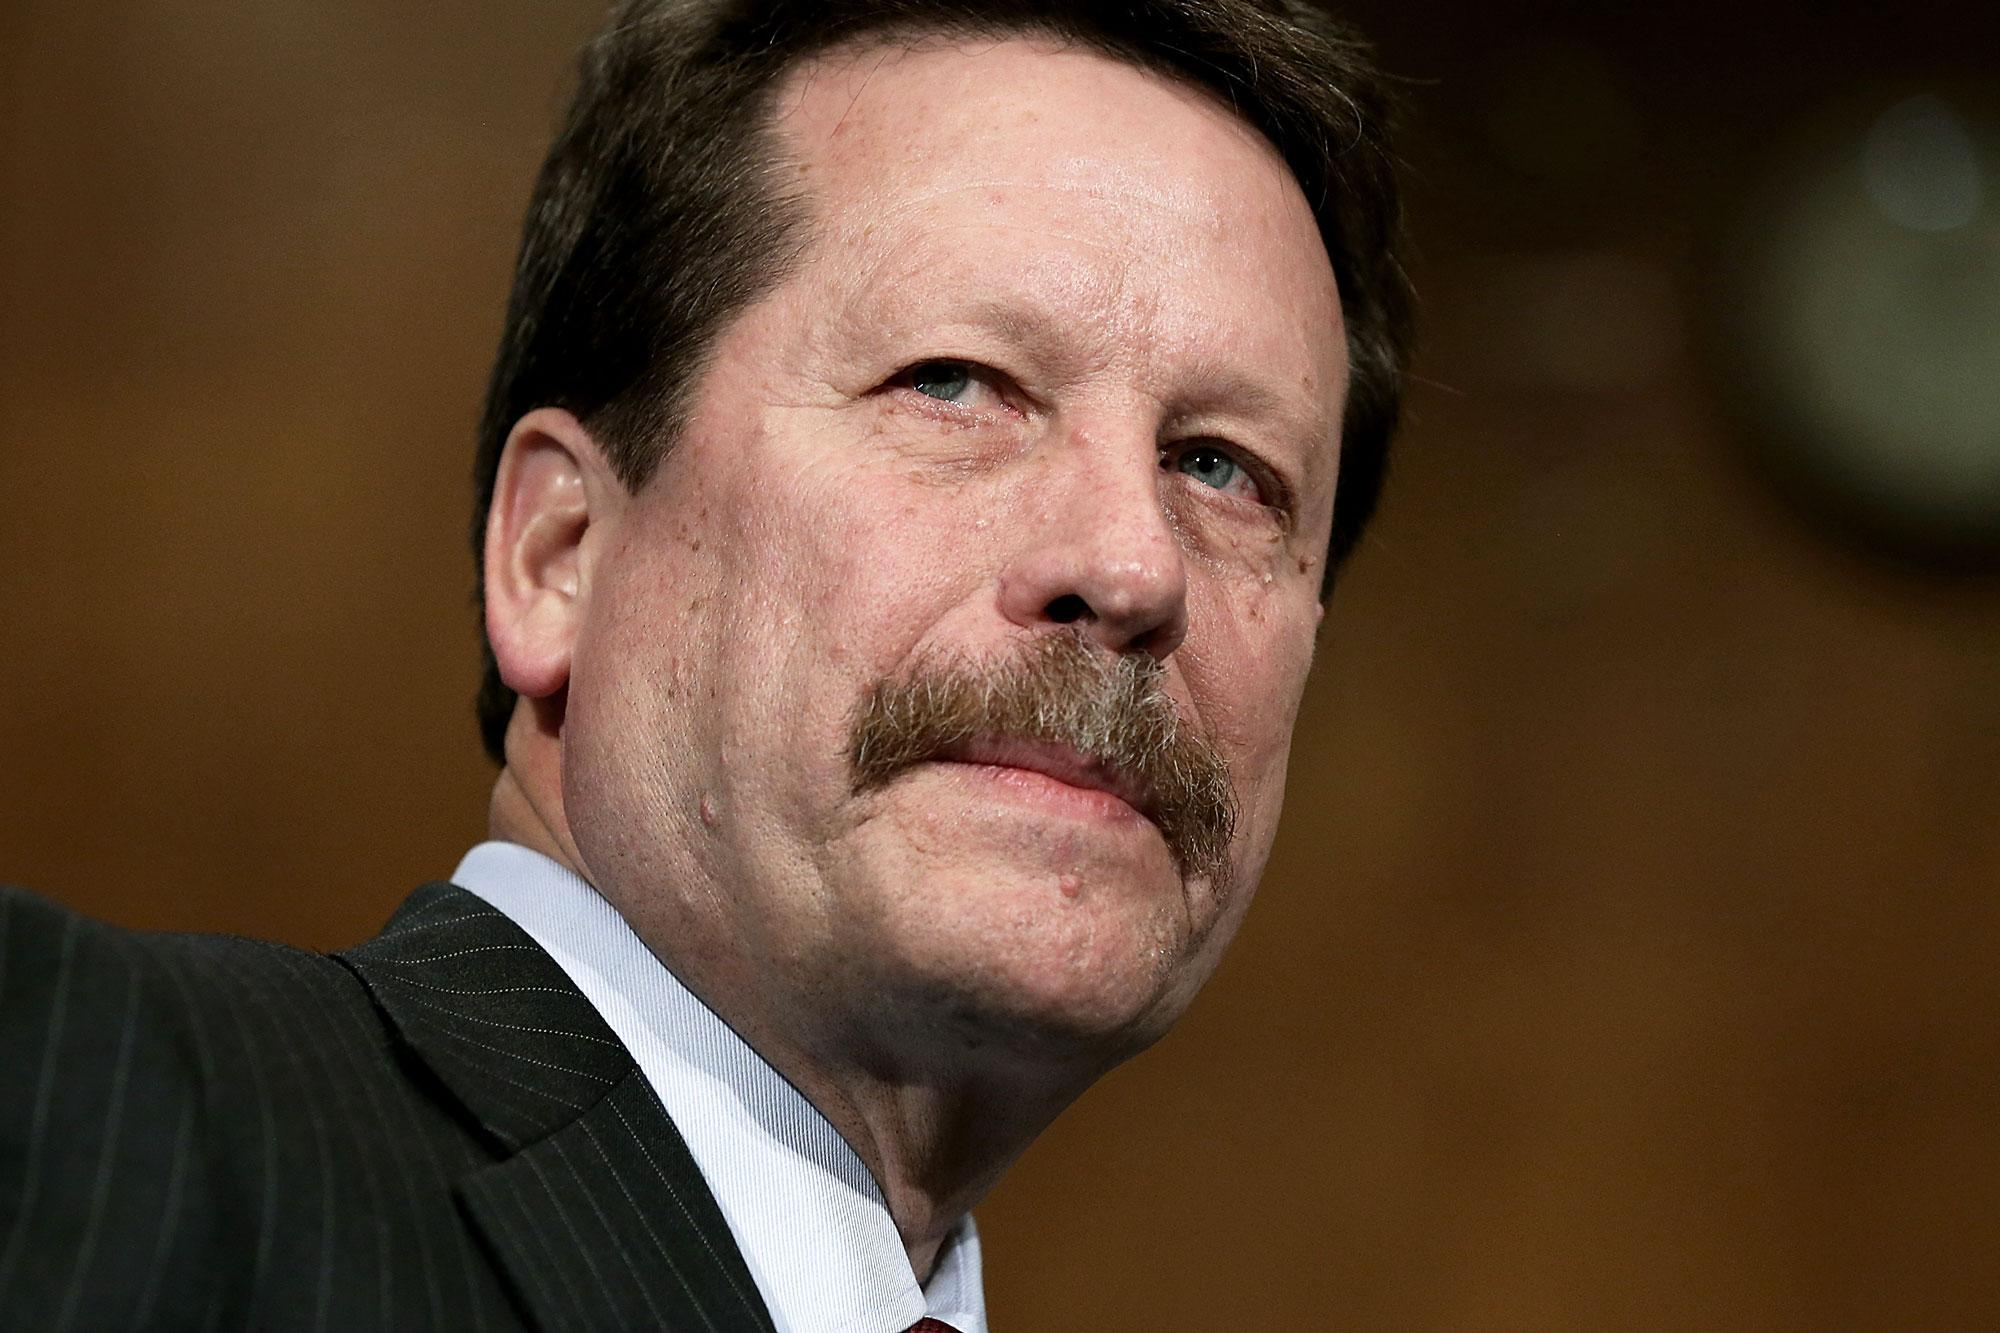 Former FDA commissioner Robert Califf is in talks with Google's life sciences arm Verily for a leadership role.